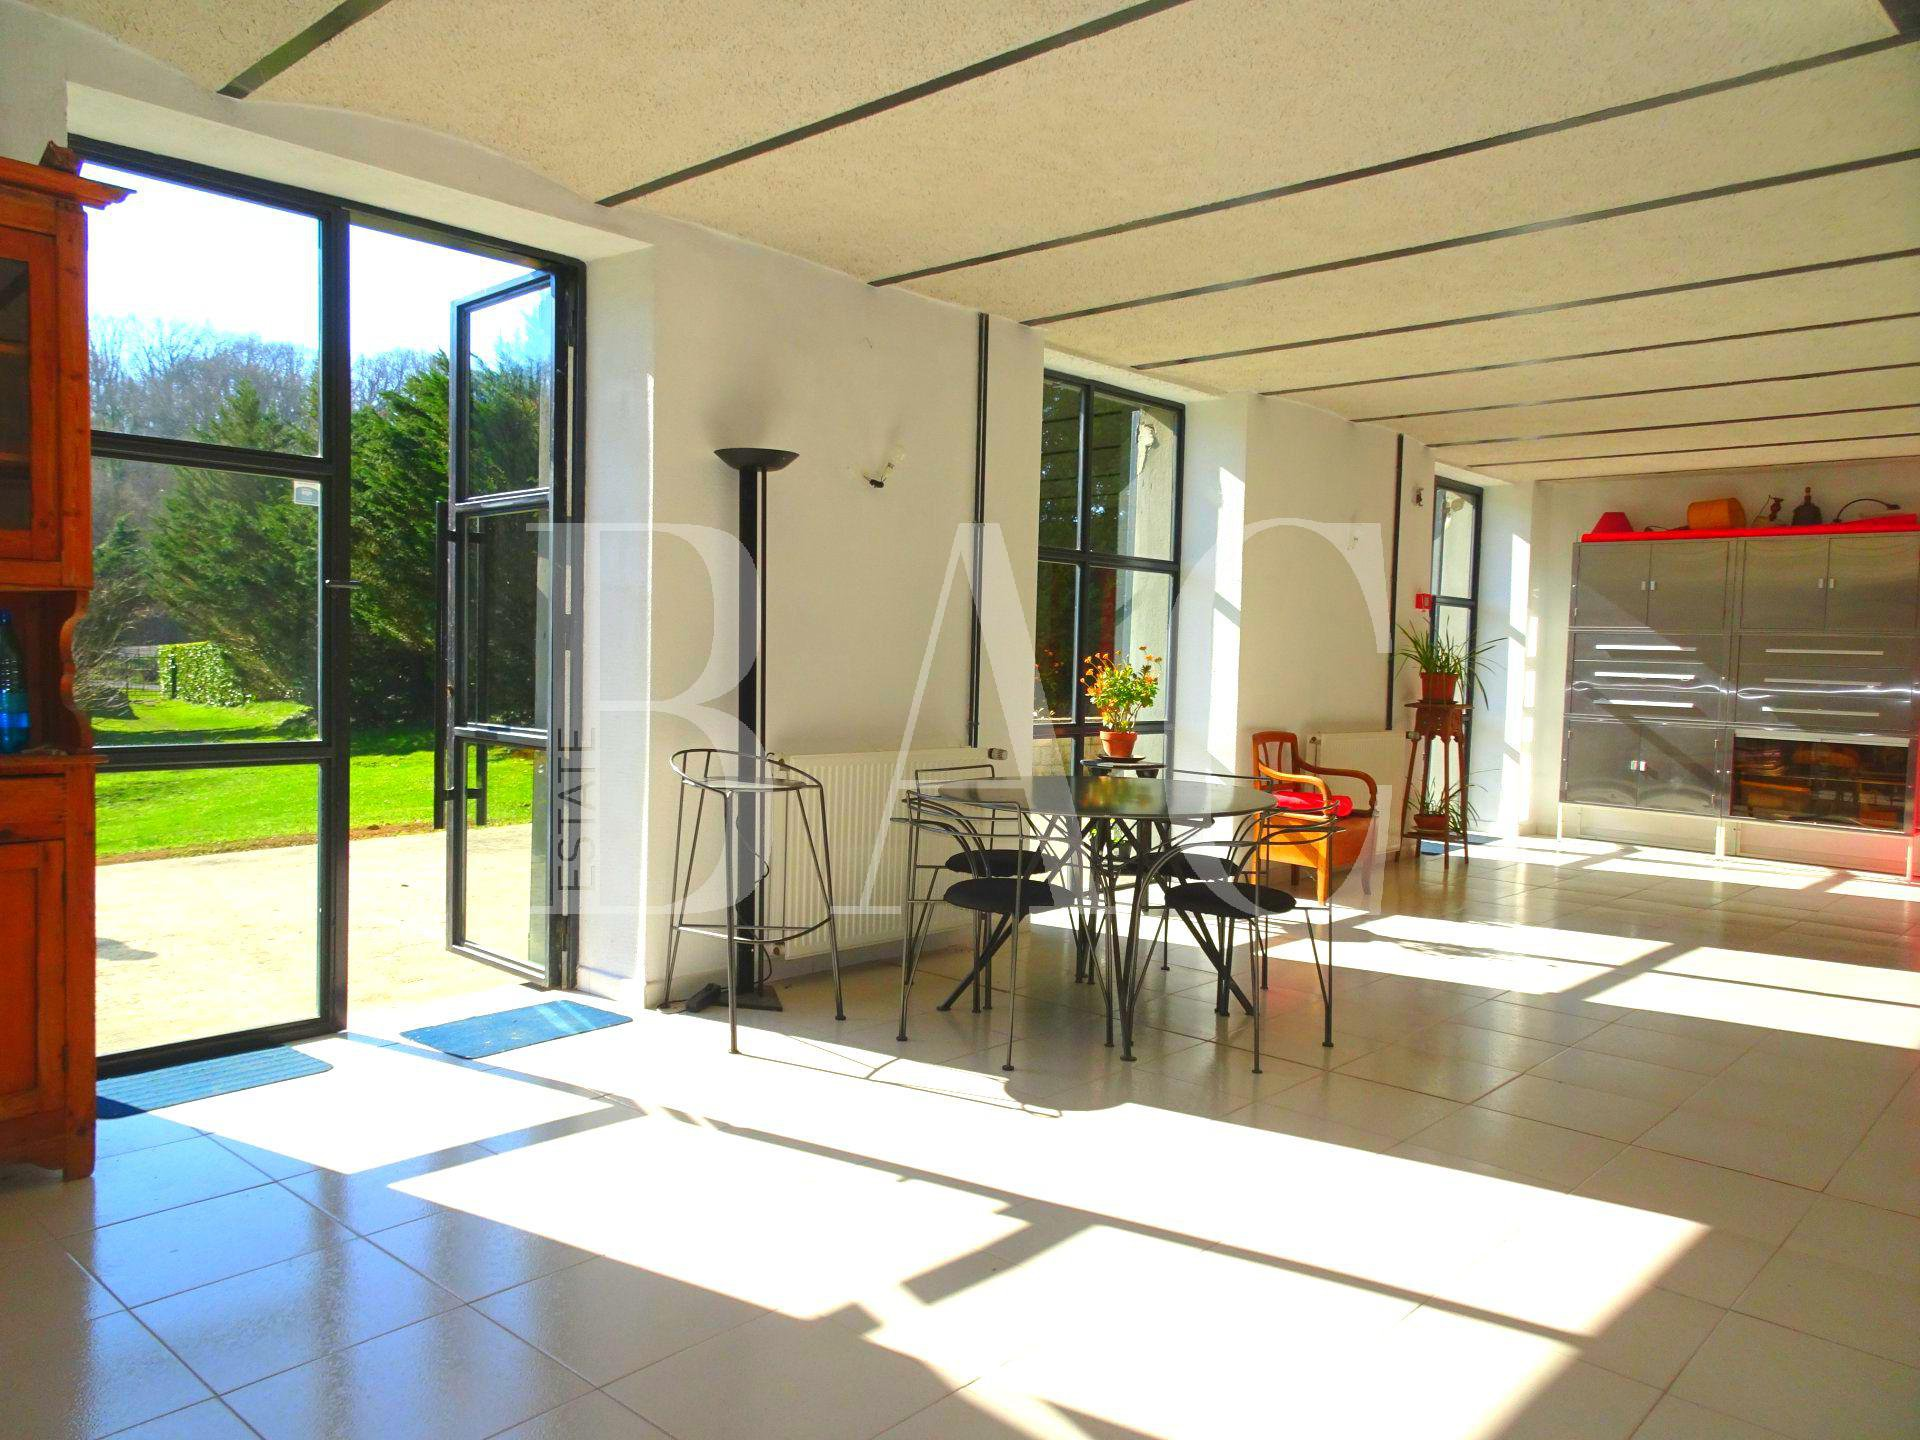 Exceptional house 450 m² with 1 ha of land between Grenoble and Lyon